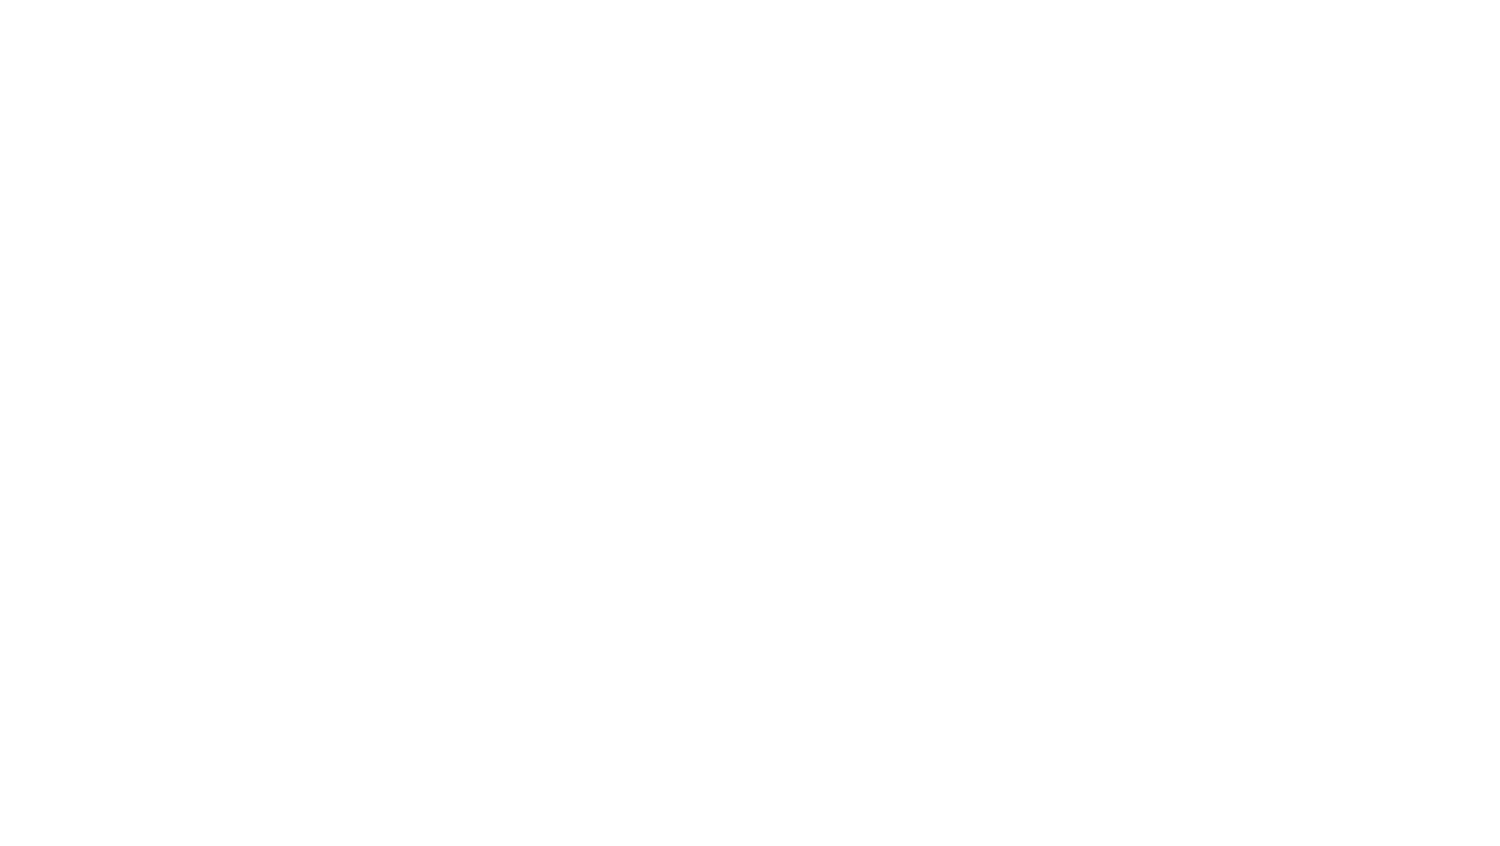 Belmont Child Care Association, Inc.